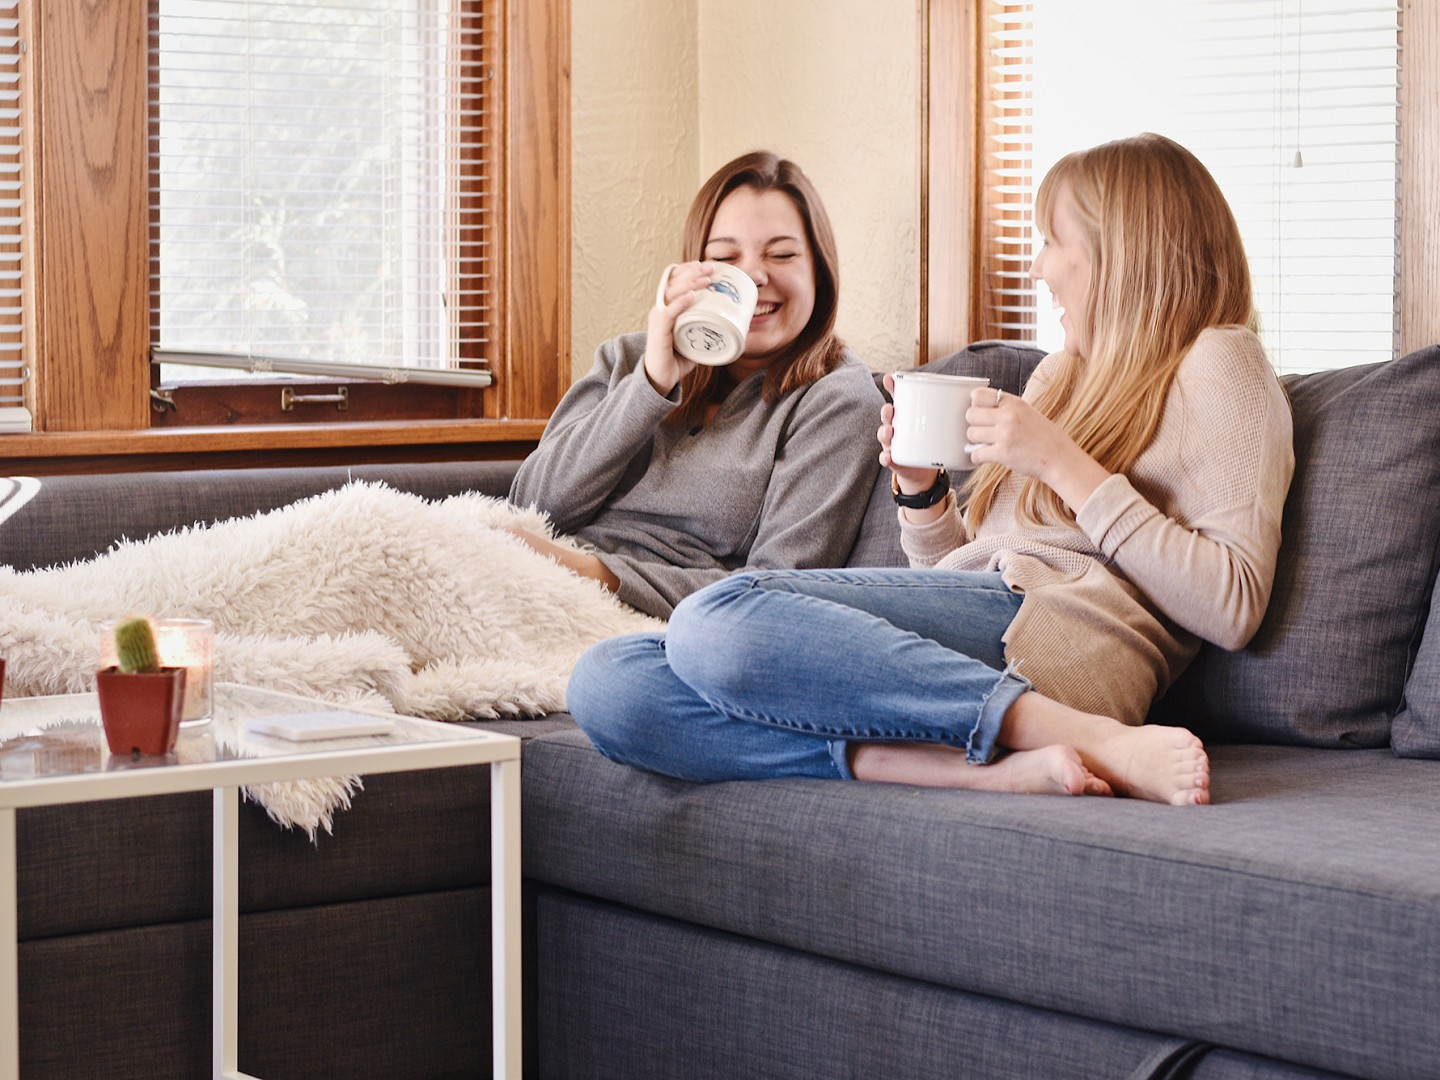 female students on sofa drinking coffee